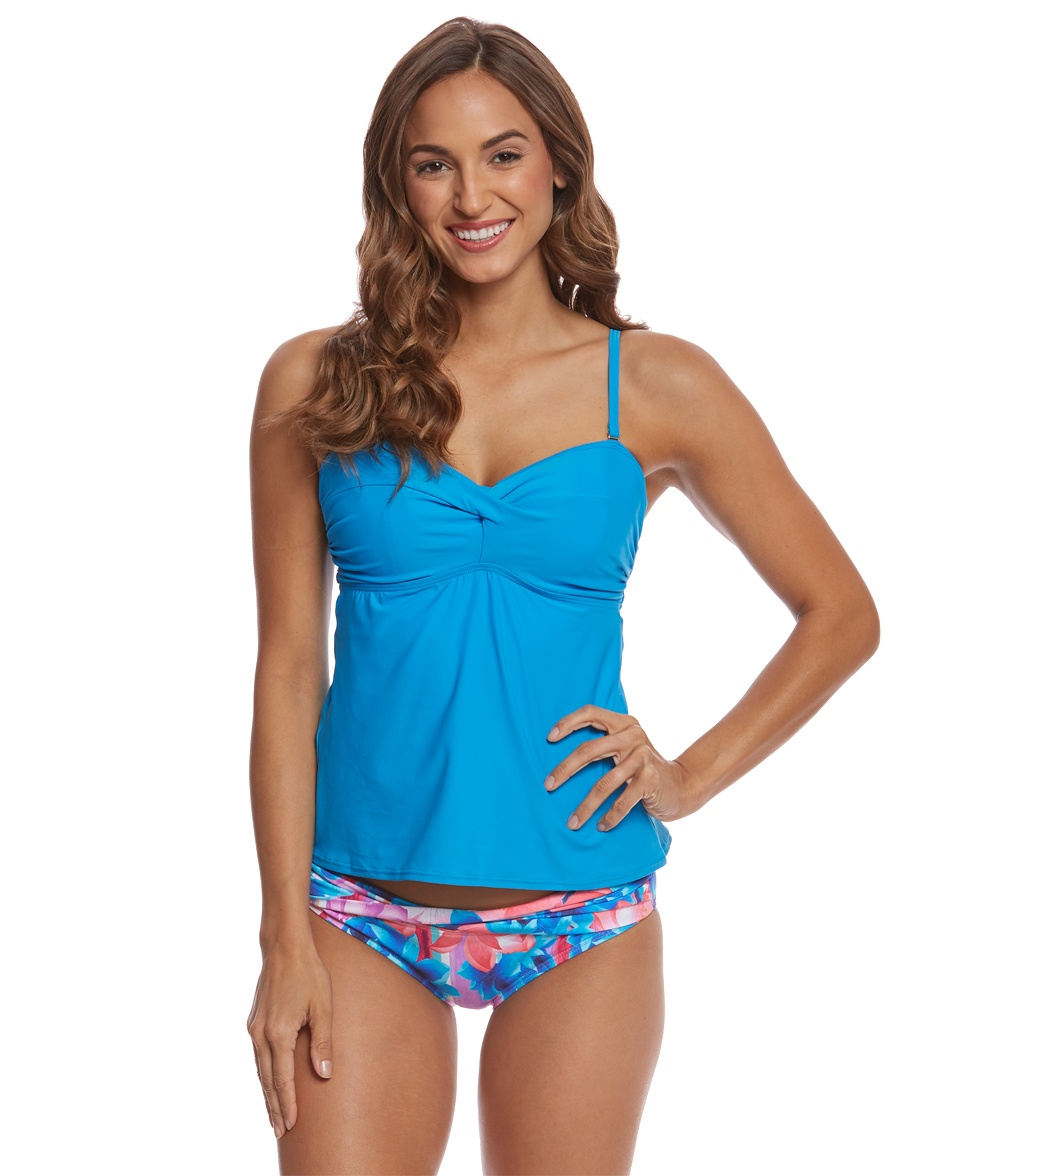 9566bac3b5745 Sunsets French Blue Iconic Twist Tankini Top (D DD Cup) at ...